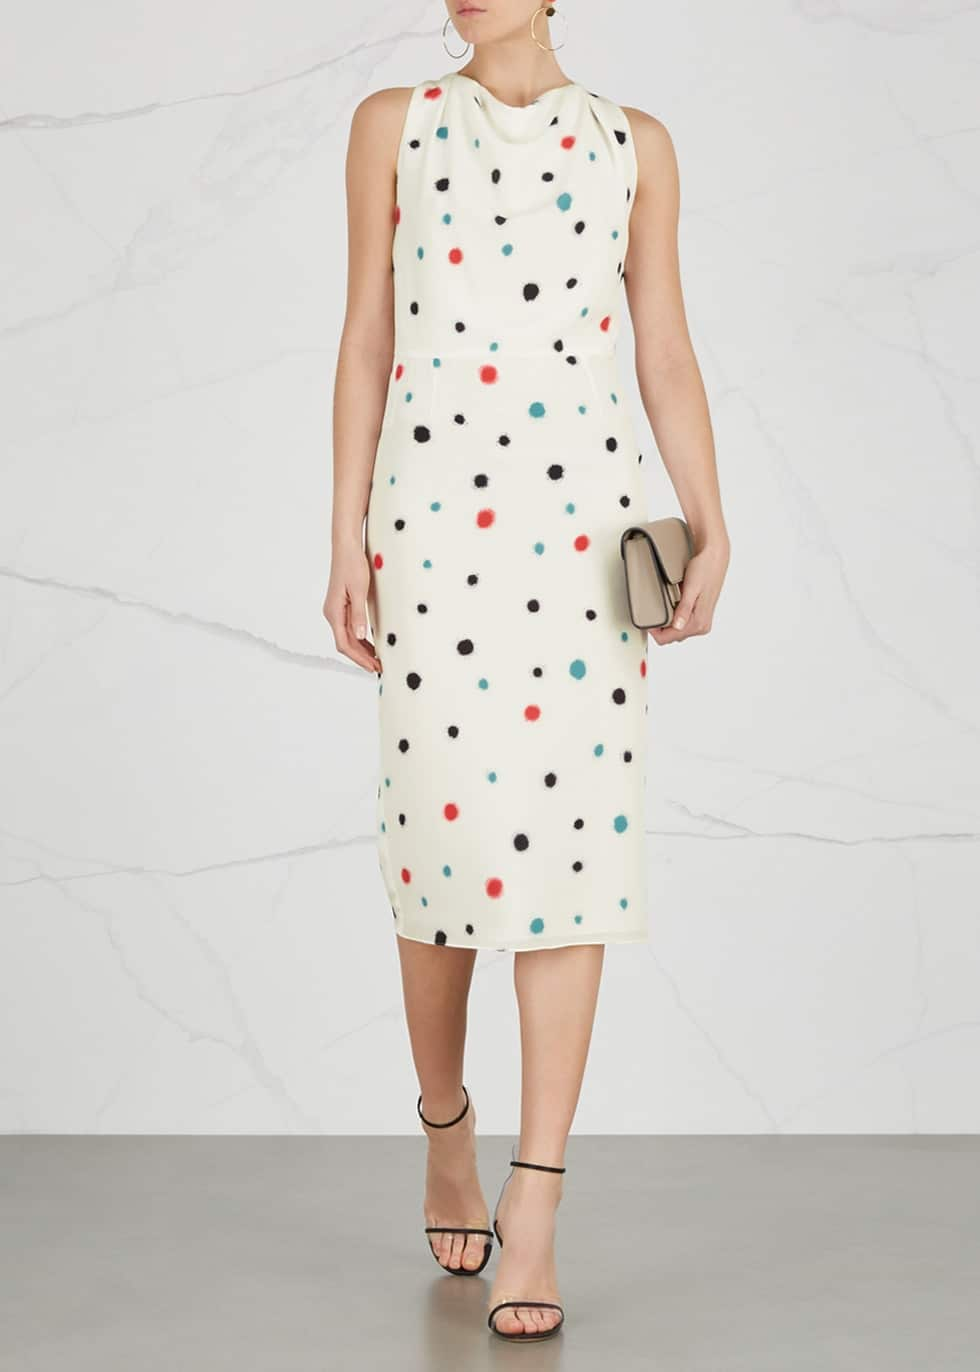 EMPORIO ARMANI Mulberry Silk Cream / Printed Dress